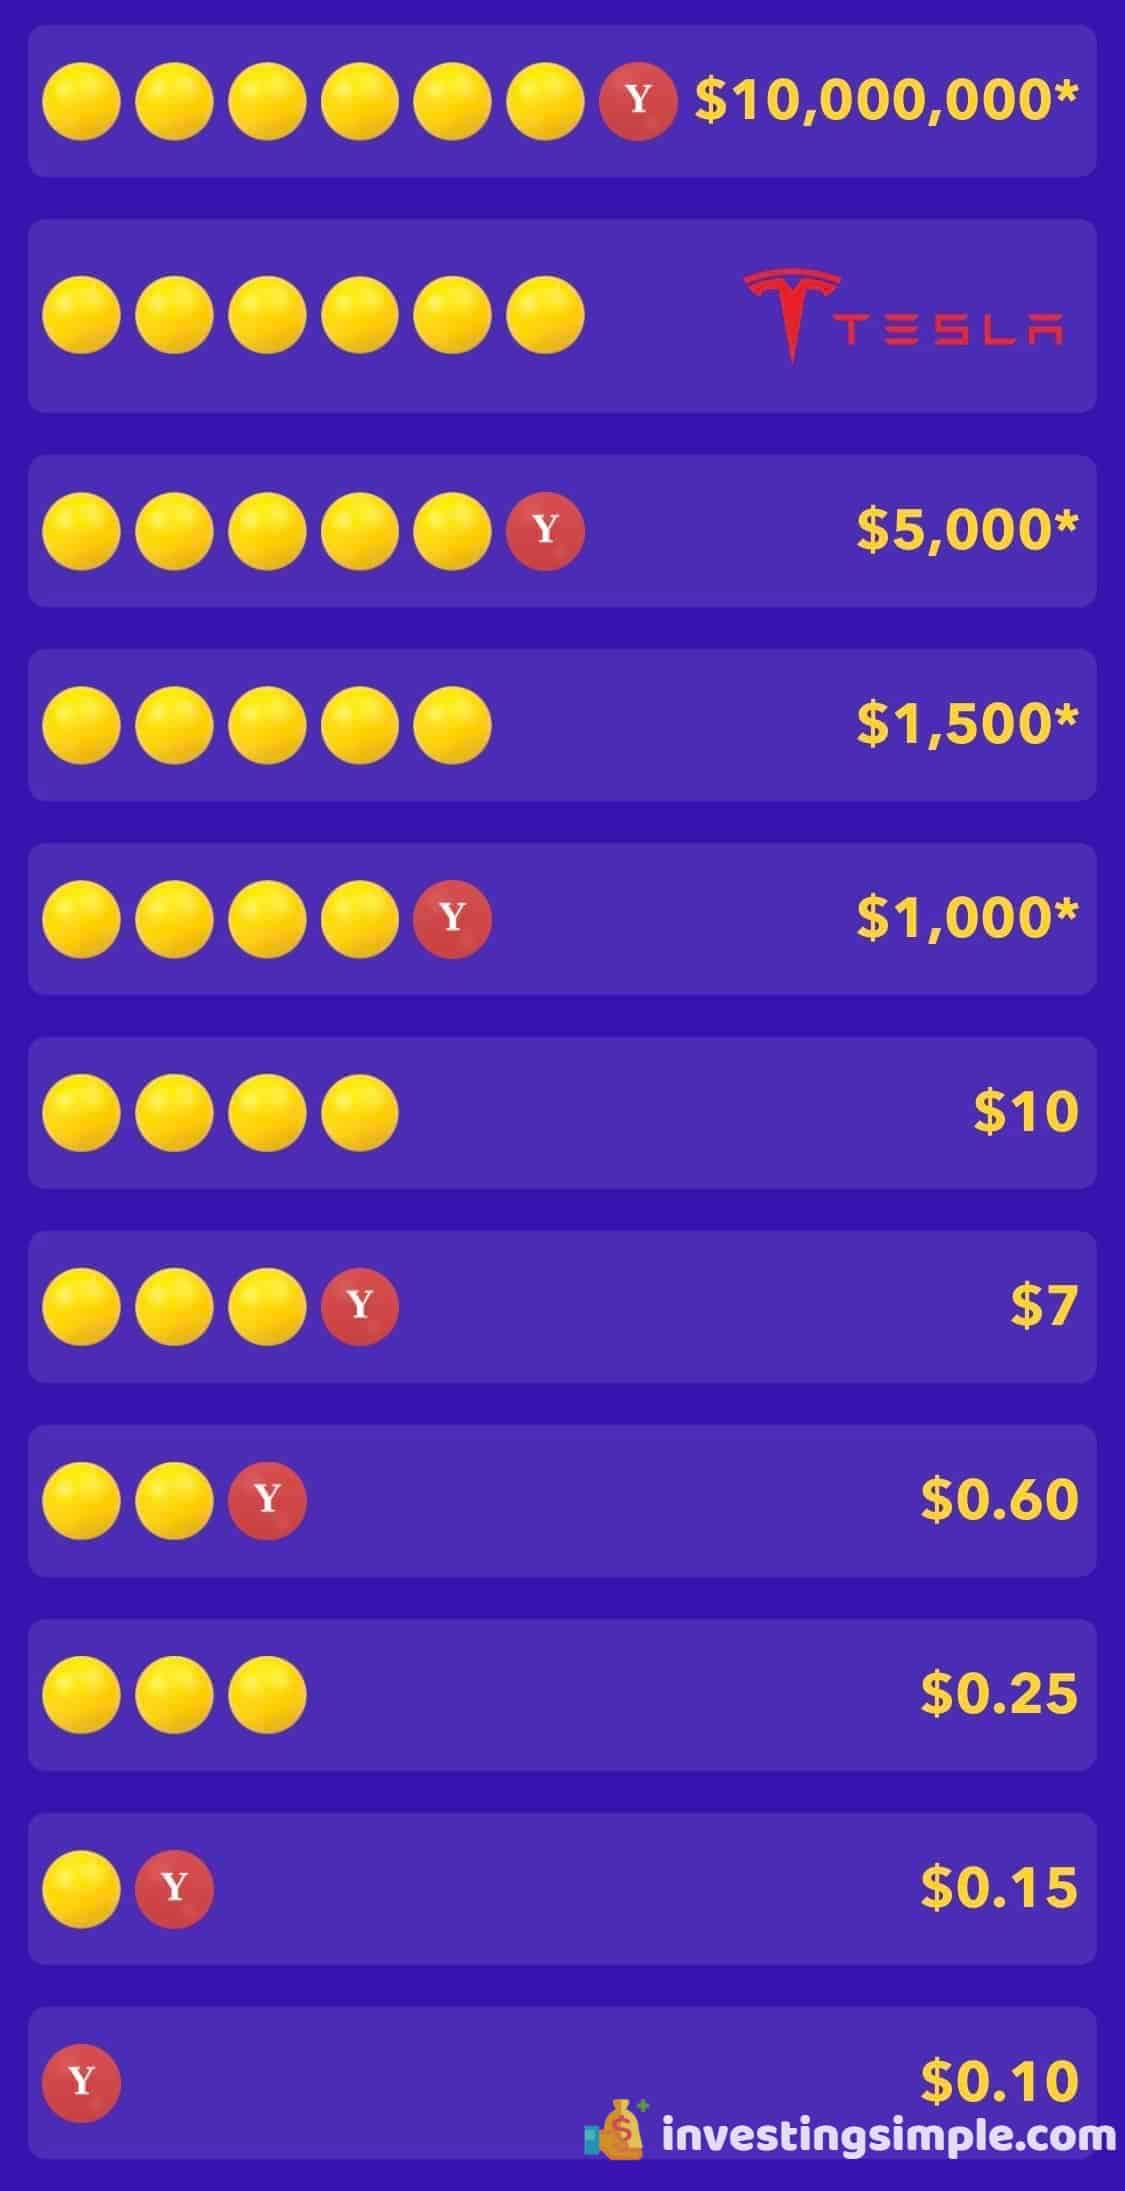 With Yotta you can win small prizes or large prizes